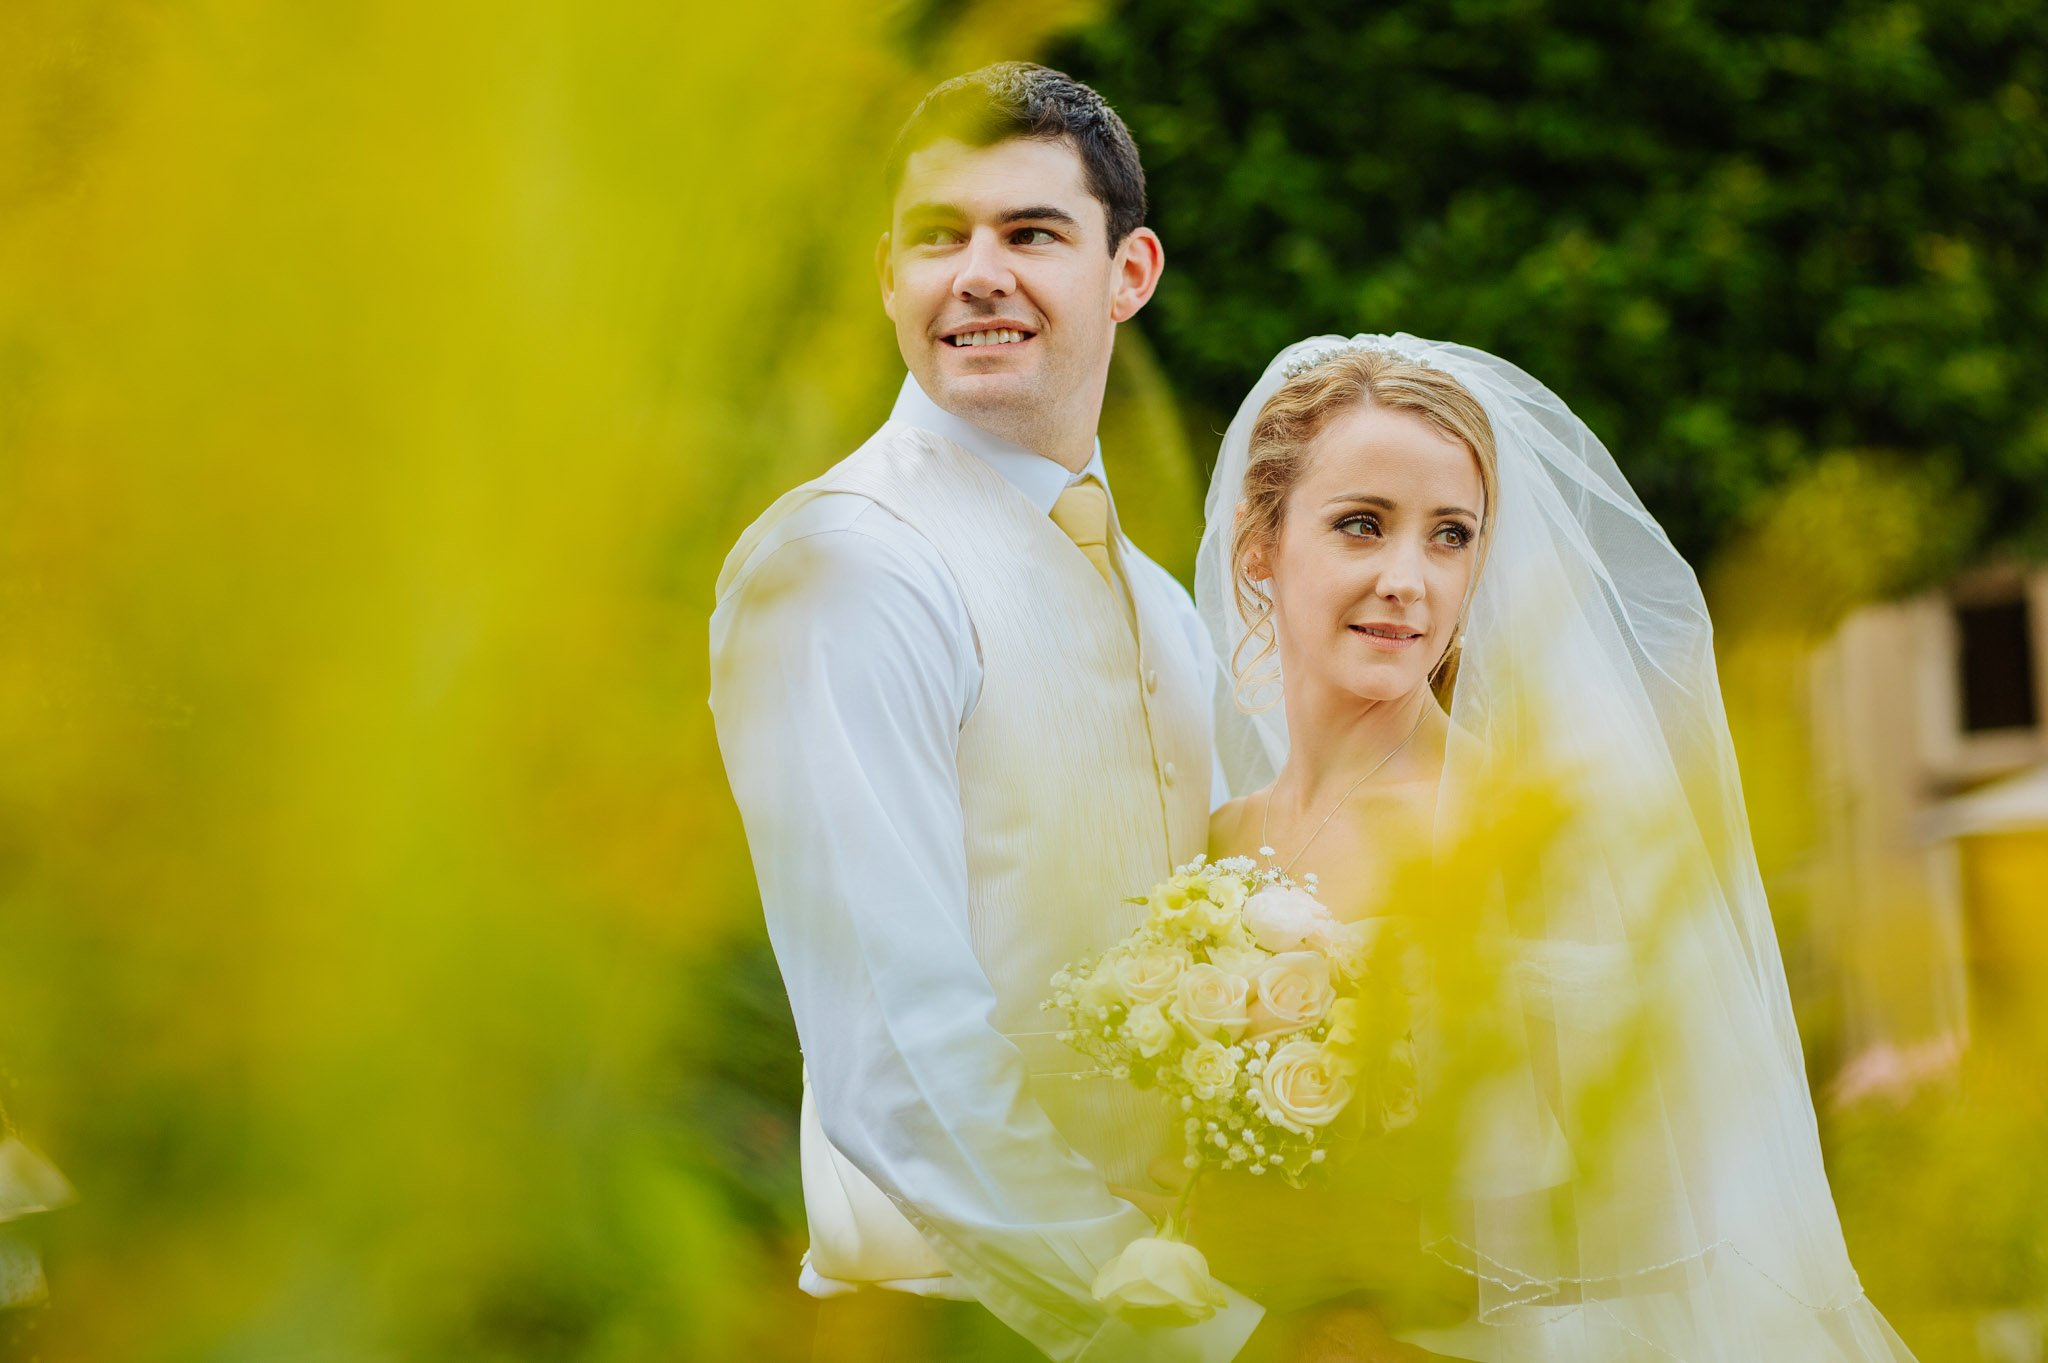 Georgina + Mike - Wedding photography in Malvern, Worcestershire 73